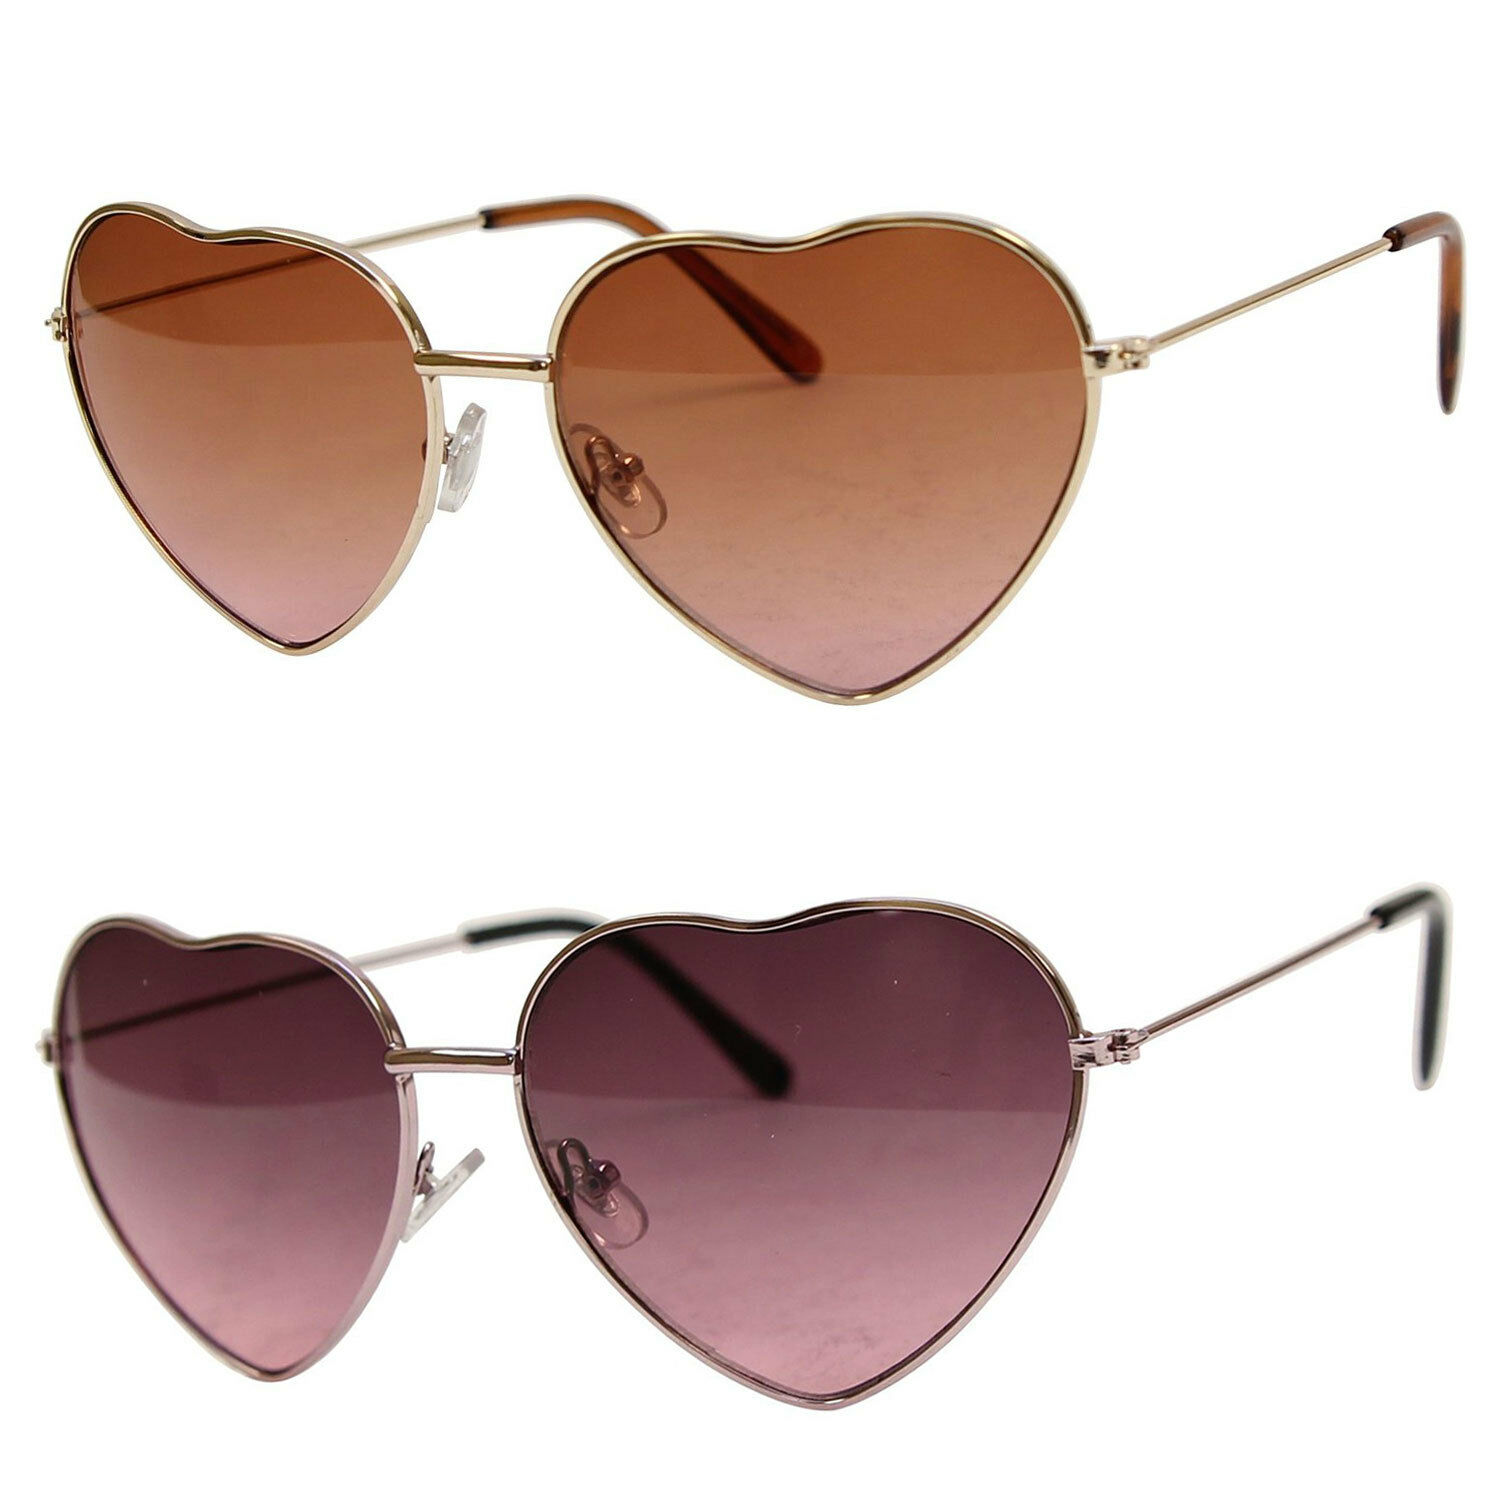 1 or 2 Pair Womens Small Thin Metal Heart Shaped Frame Sunglasses Spring Hinge